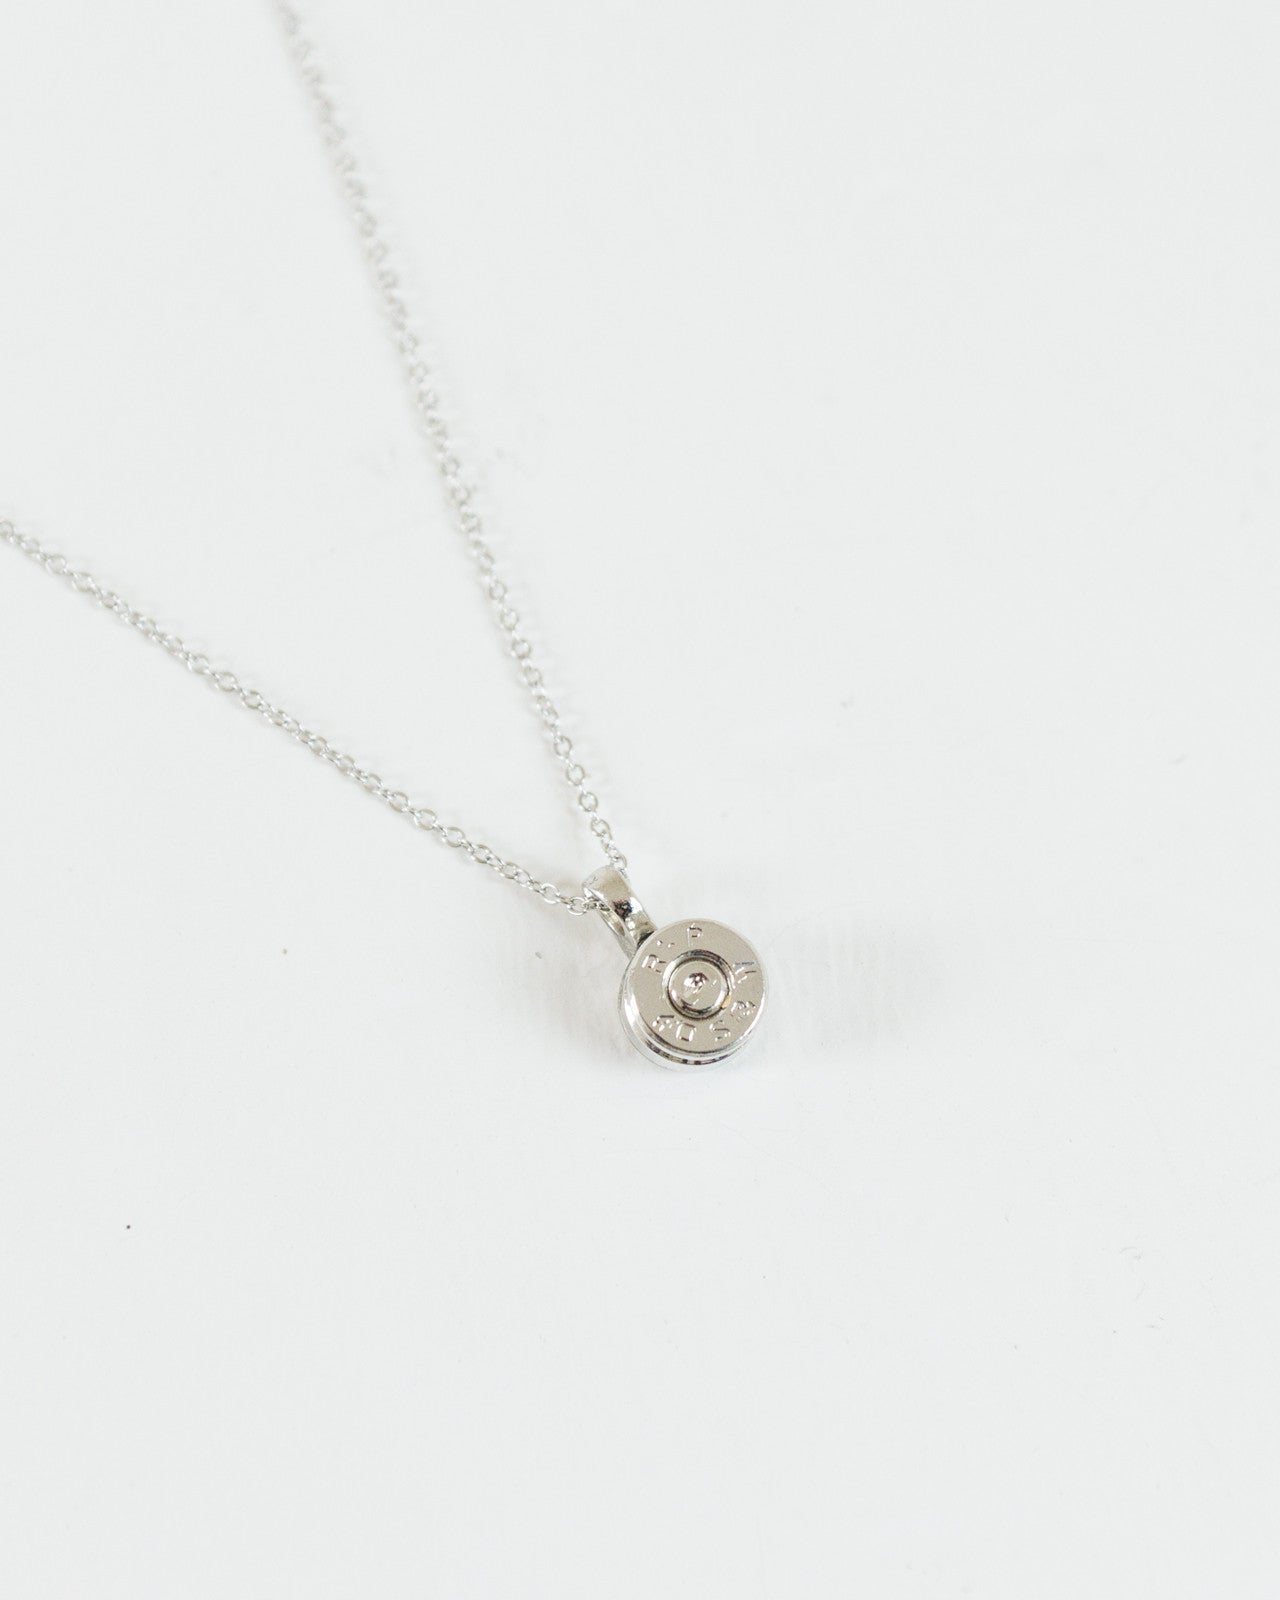 Bullet Inspired Necklace | Rose & Remington